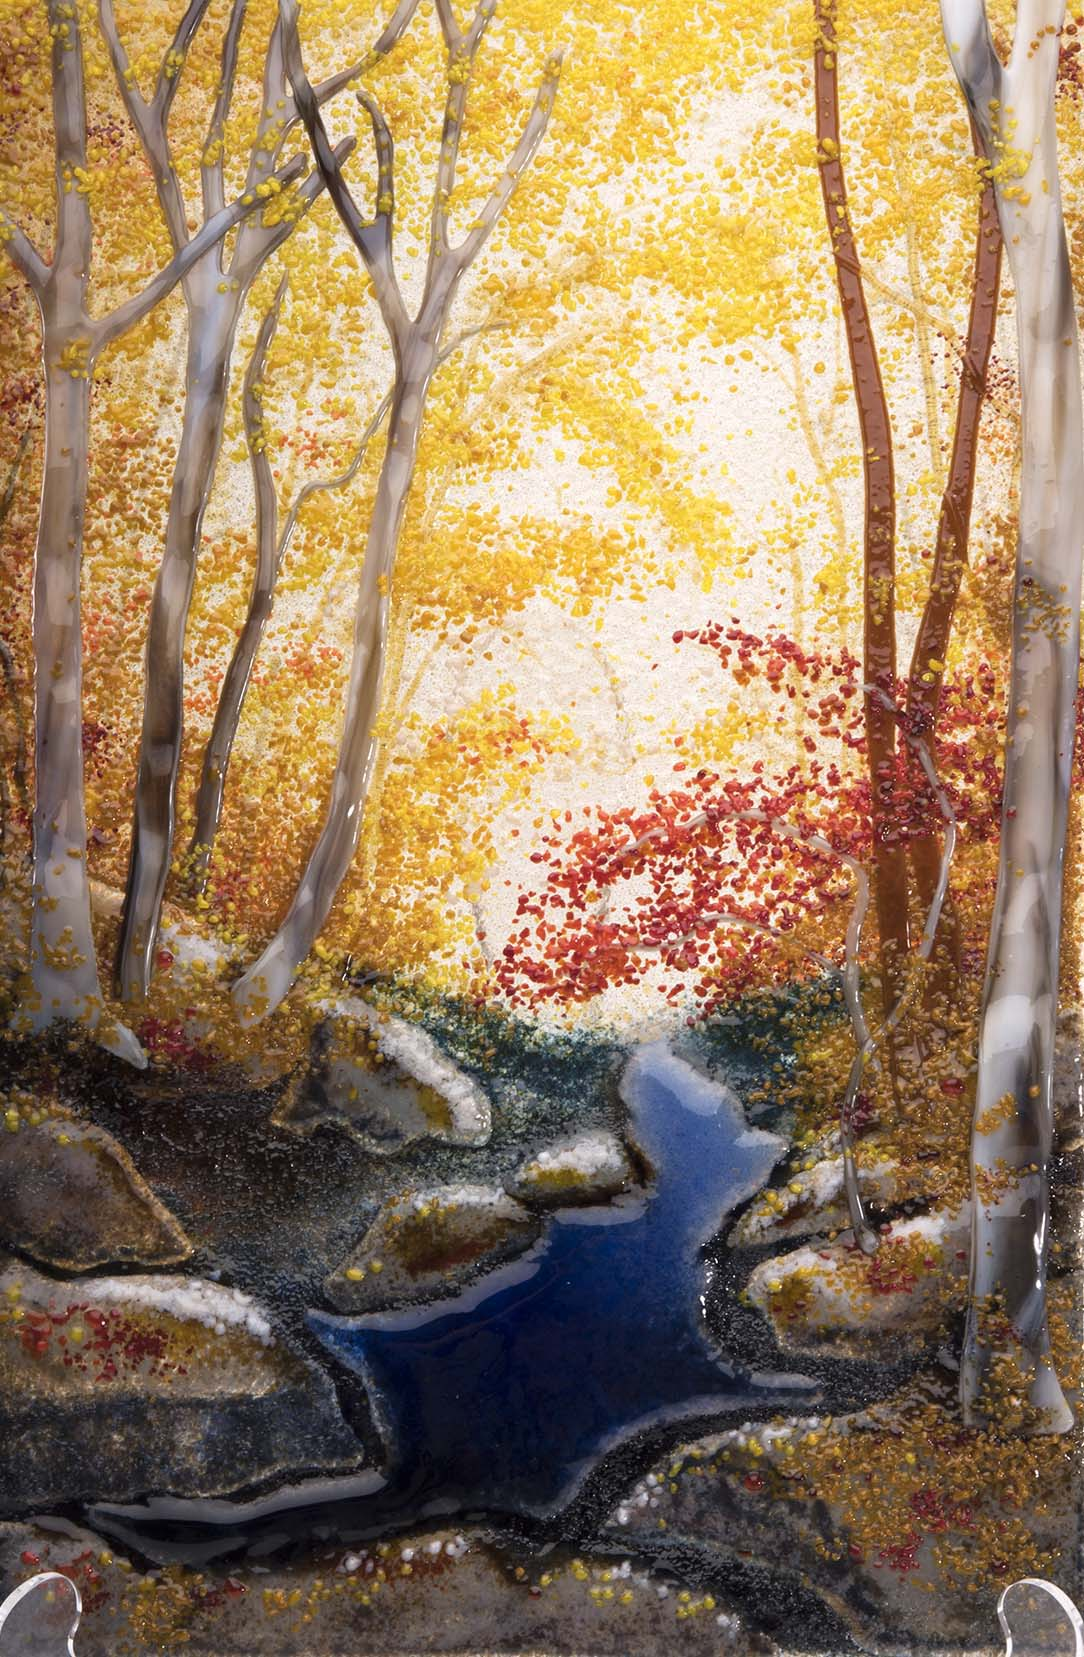 Autumn - D. Howell